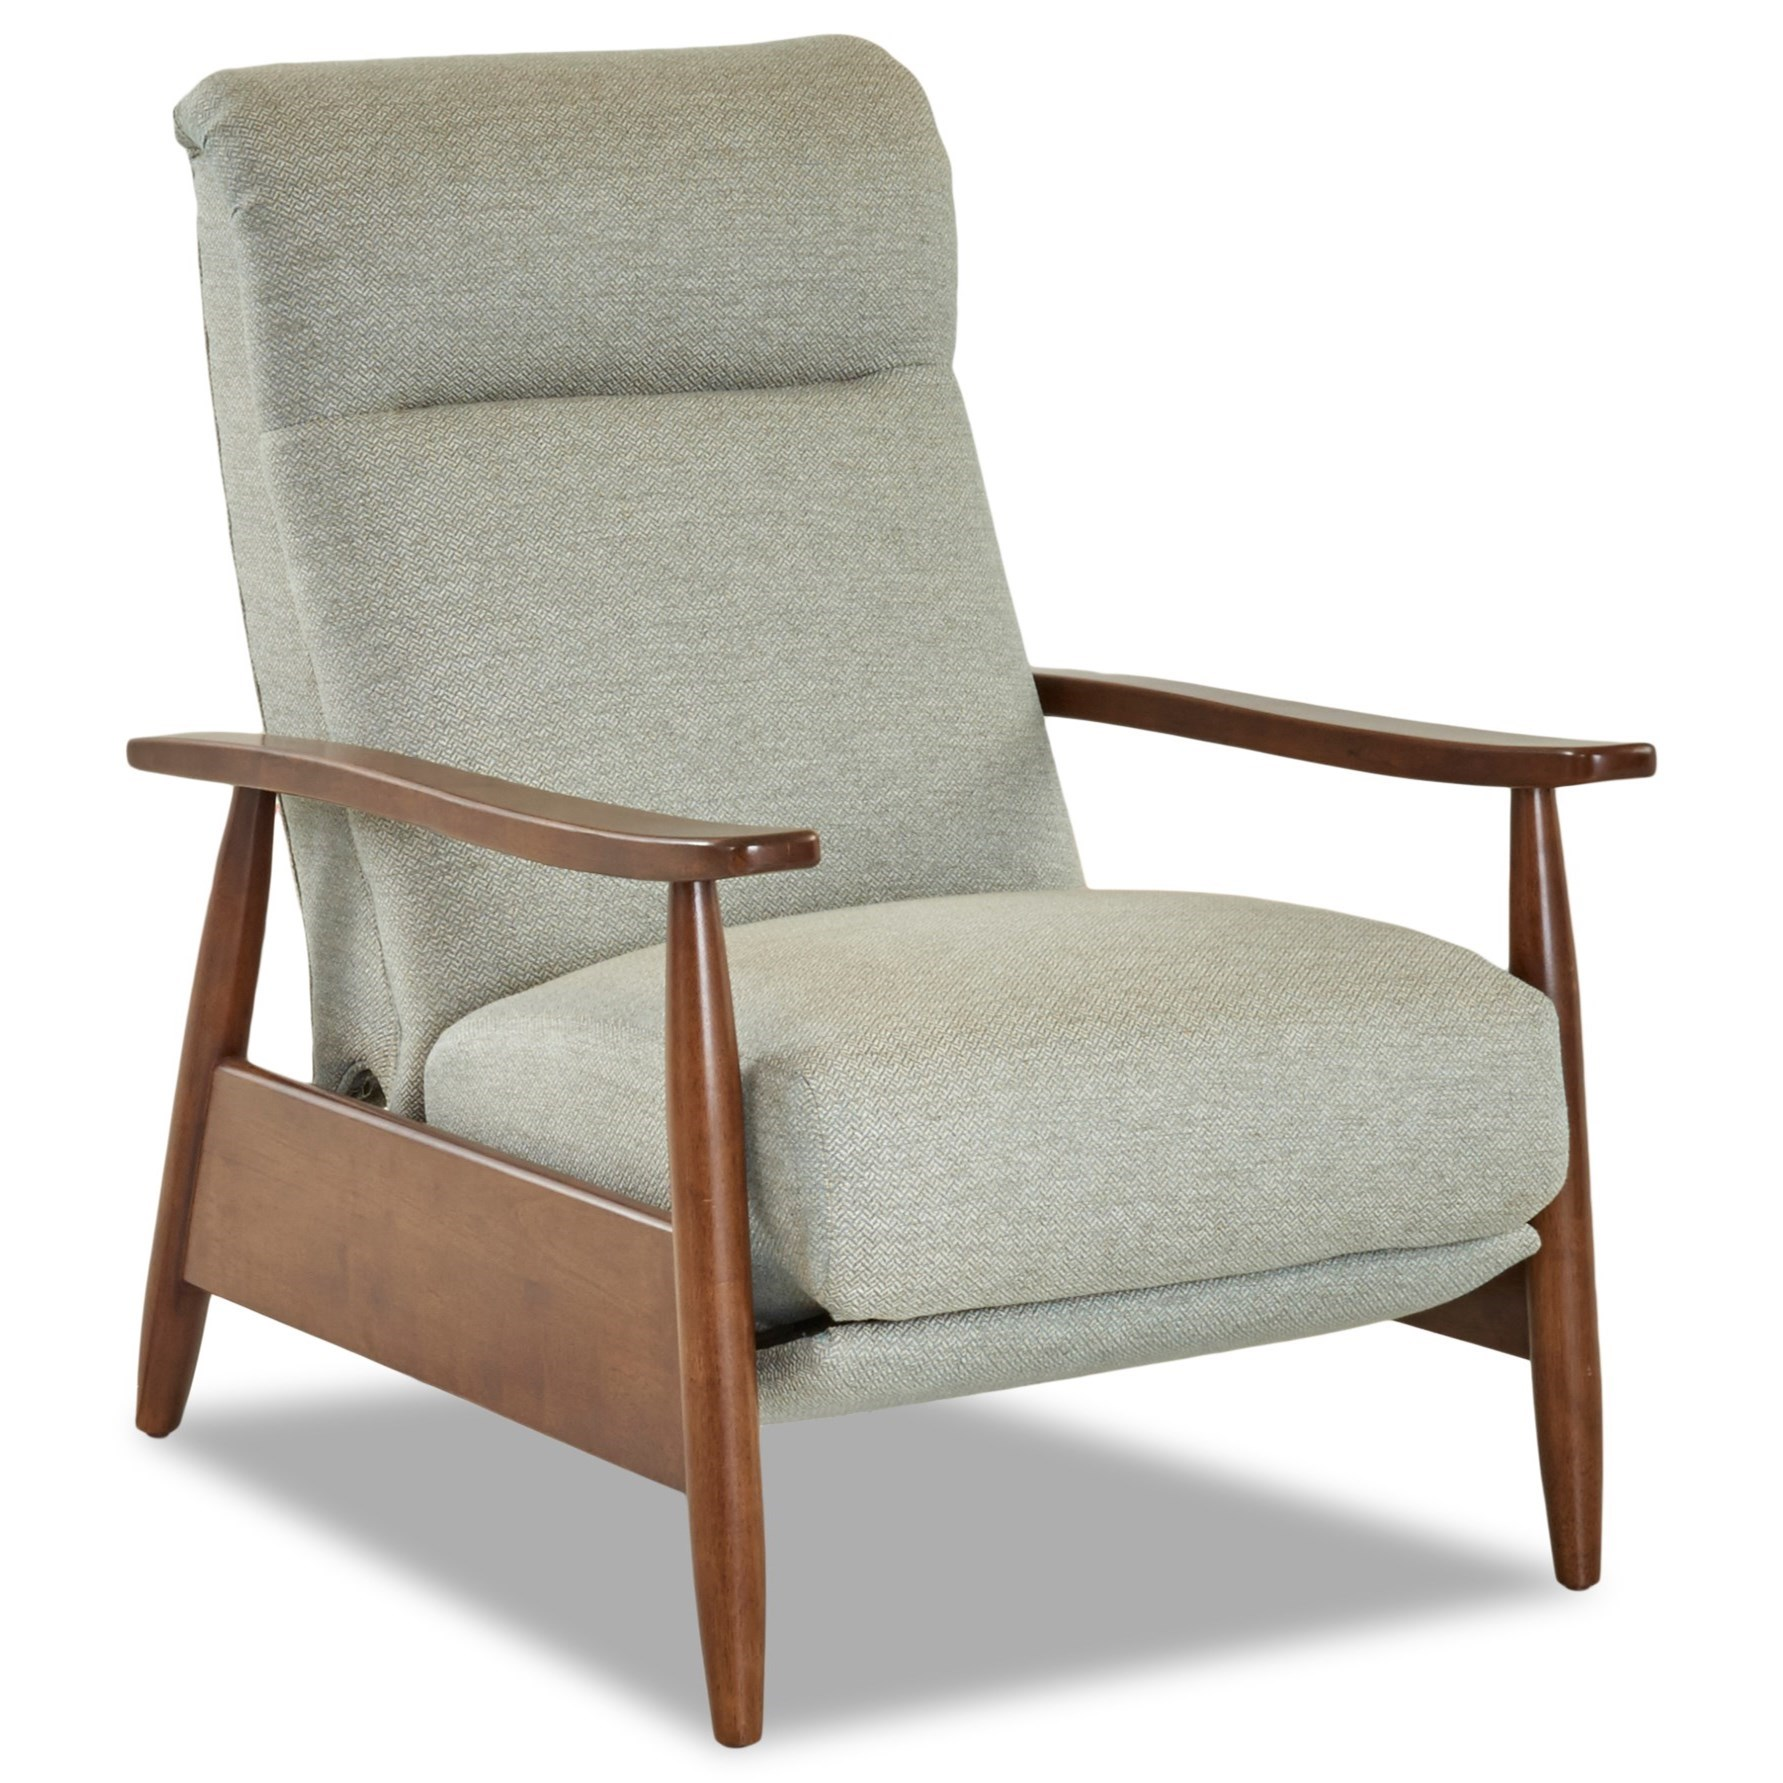 Elanor High Leg Reclining Chair by Klaussner at Lapeer Furniture & Mattress Center